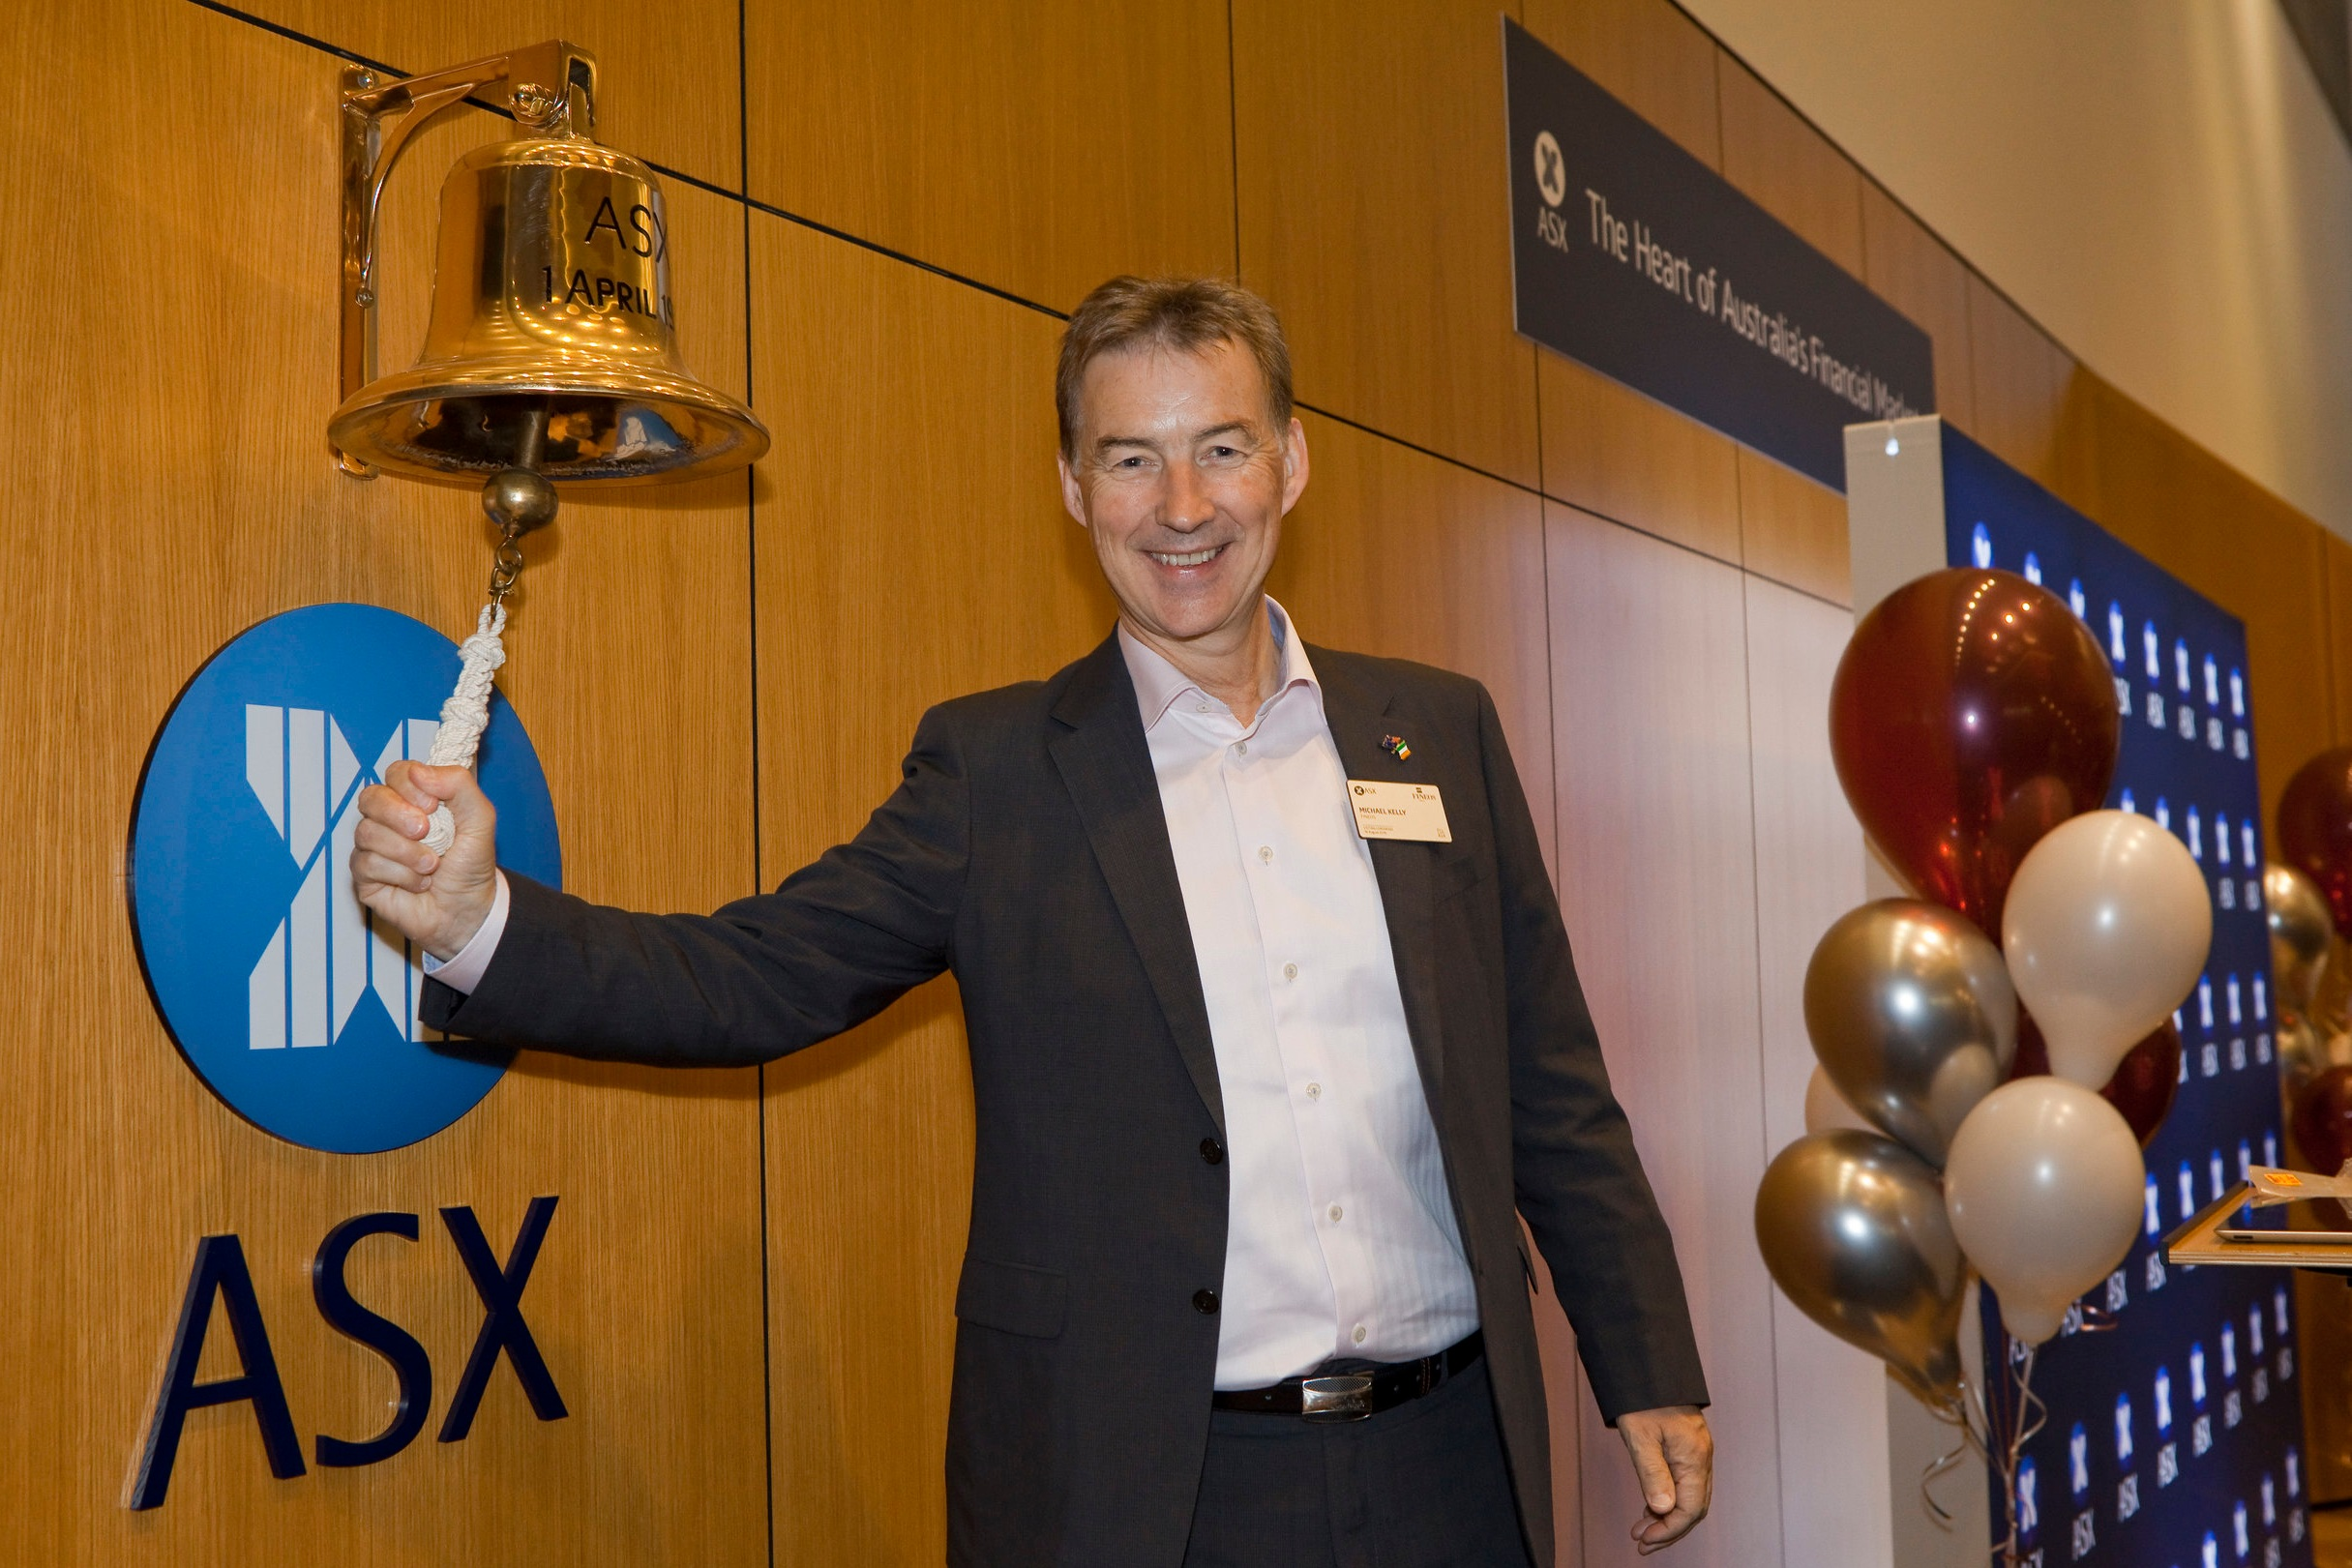 FINEOS founder Michael Kelly rang the opening bell at the ASX.